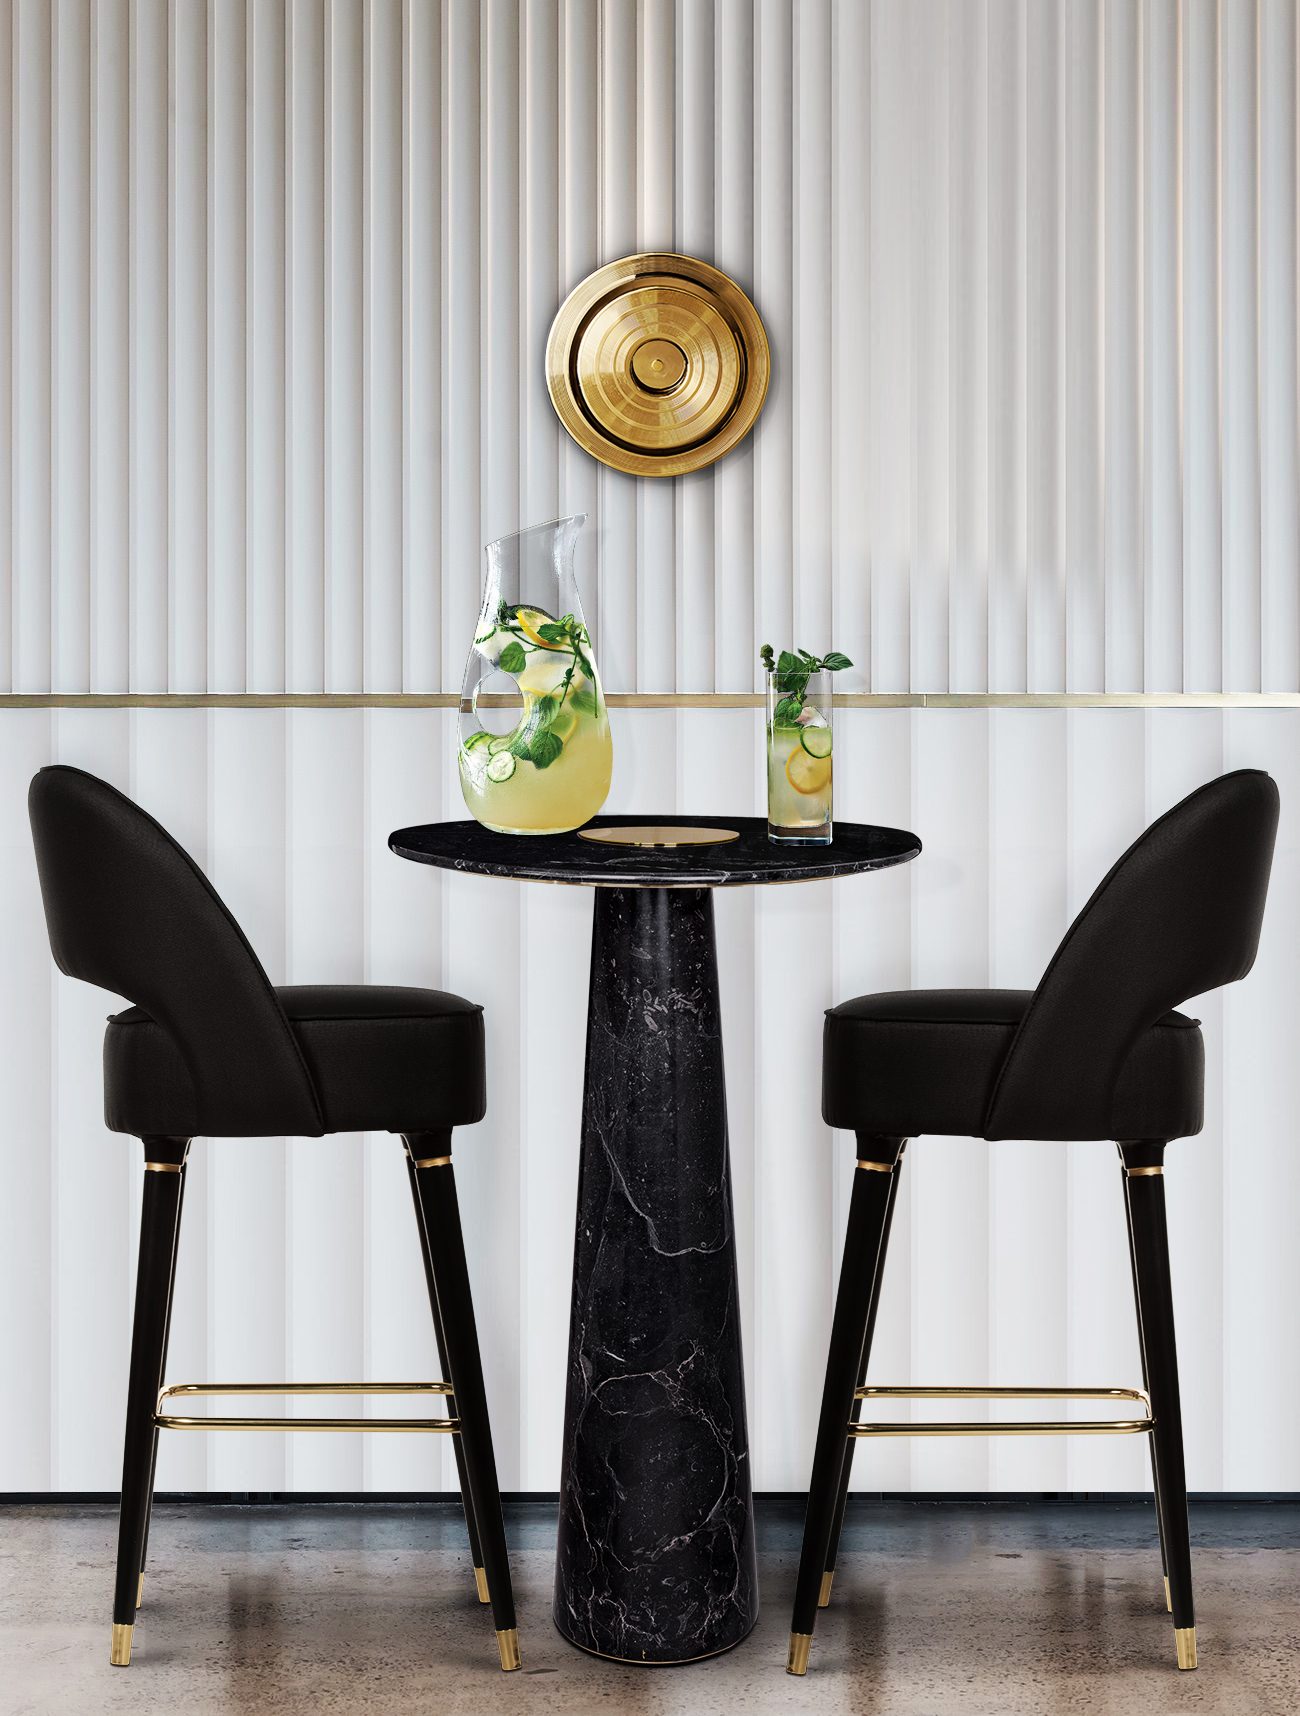 HOTEL FURNITURE THE BEST WALL LAMP AND BAR STOOLS